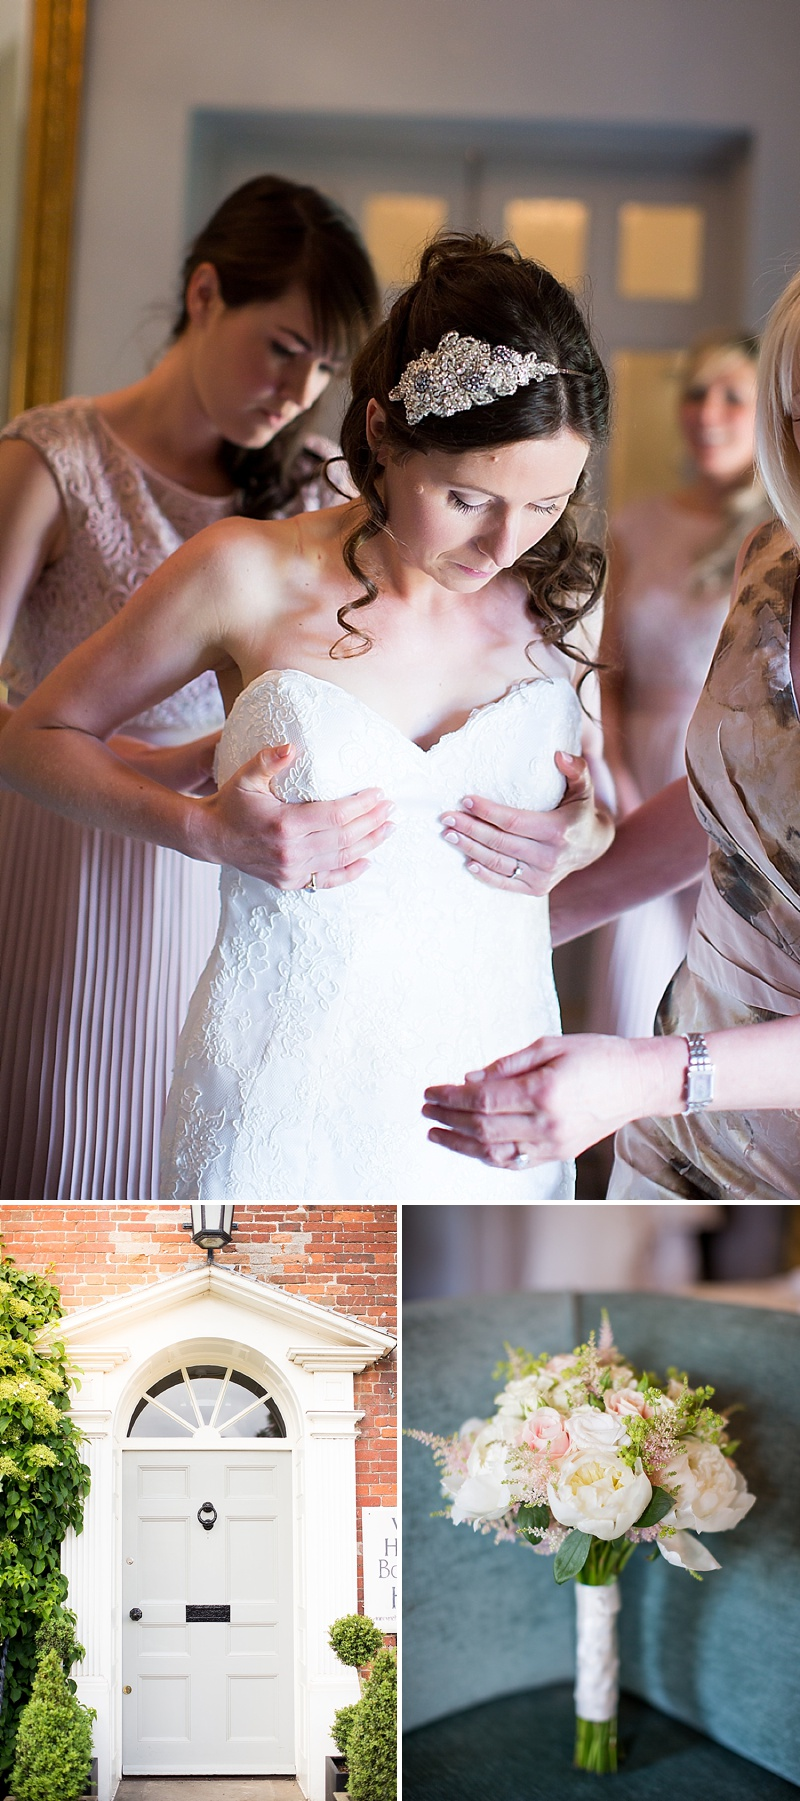 Elegant Wedding At Holkham Hall Norfolk With Bride In Hepburn By Suzanne Neville With Rachel Simpson Bridal Shoes And Nude Bridemaids Dresses From Ted Baker Images From Katherine Ashdown_0005